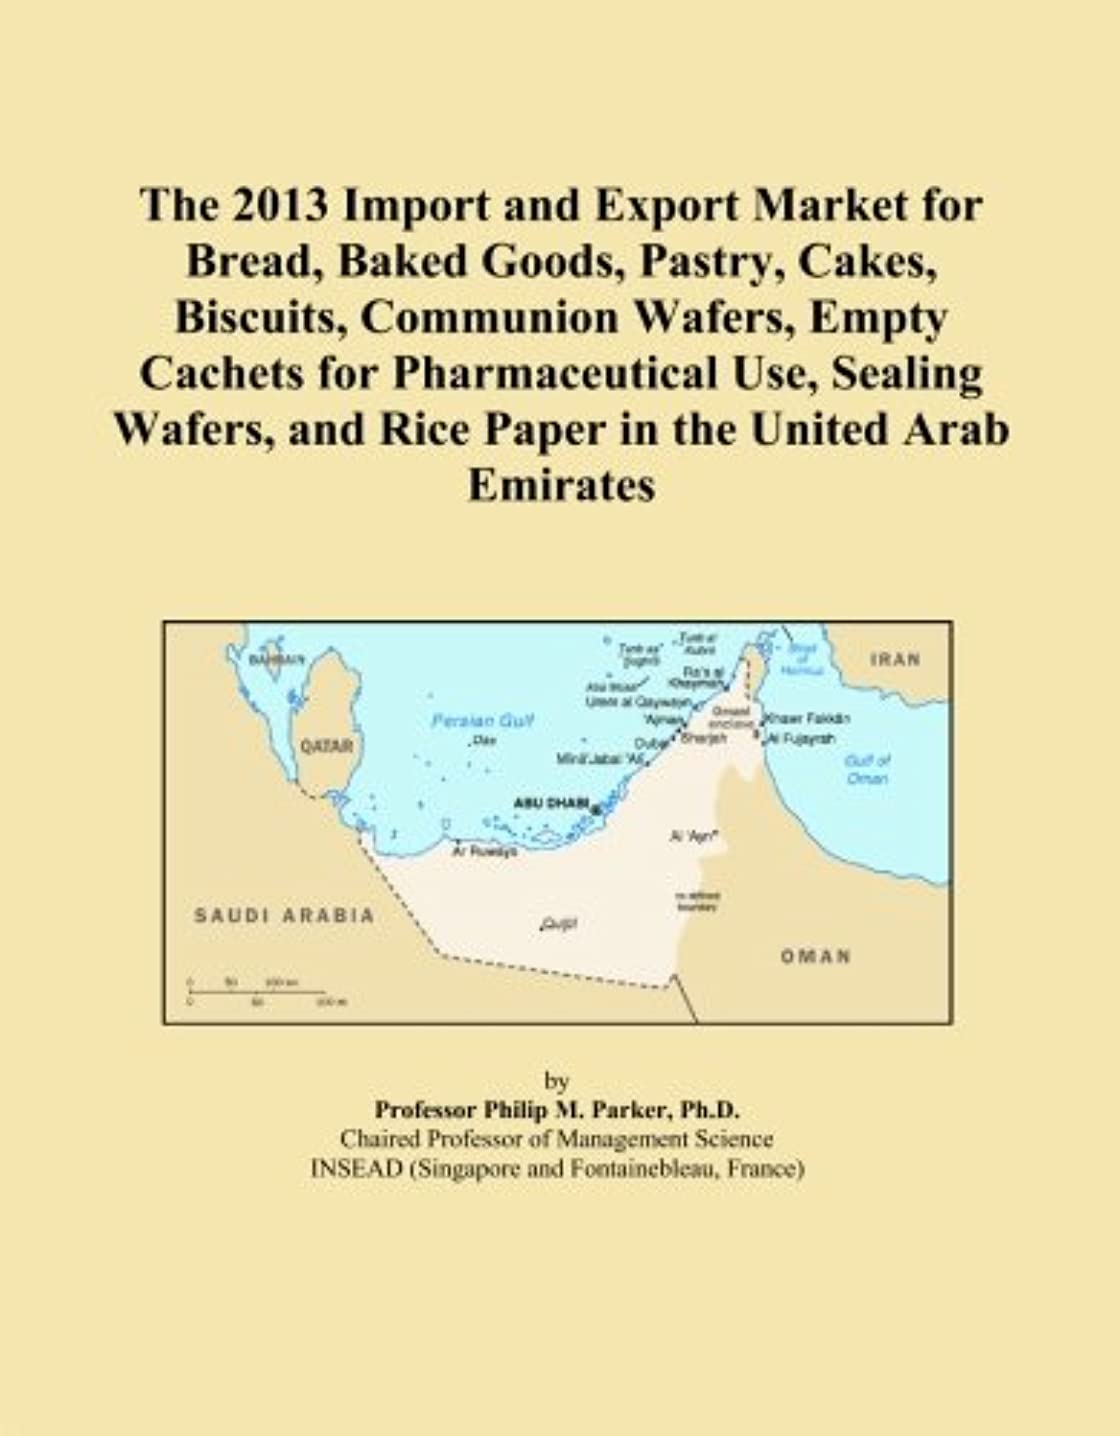 The 2013 Import and Export Market for Bread, Baked Goods, Pastry, Cakes, Biscuits, Communion Wafers, Empty Cachets for Pharmaceutical Use, Sealing Wafers, and Rice Paper in the United Arab Emirates